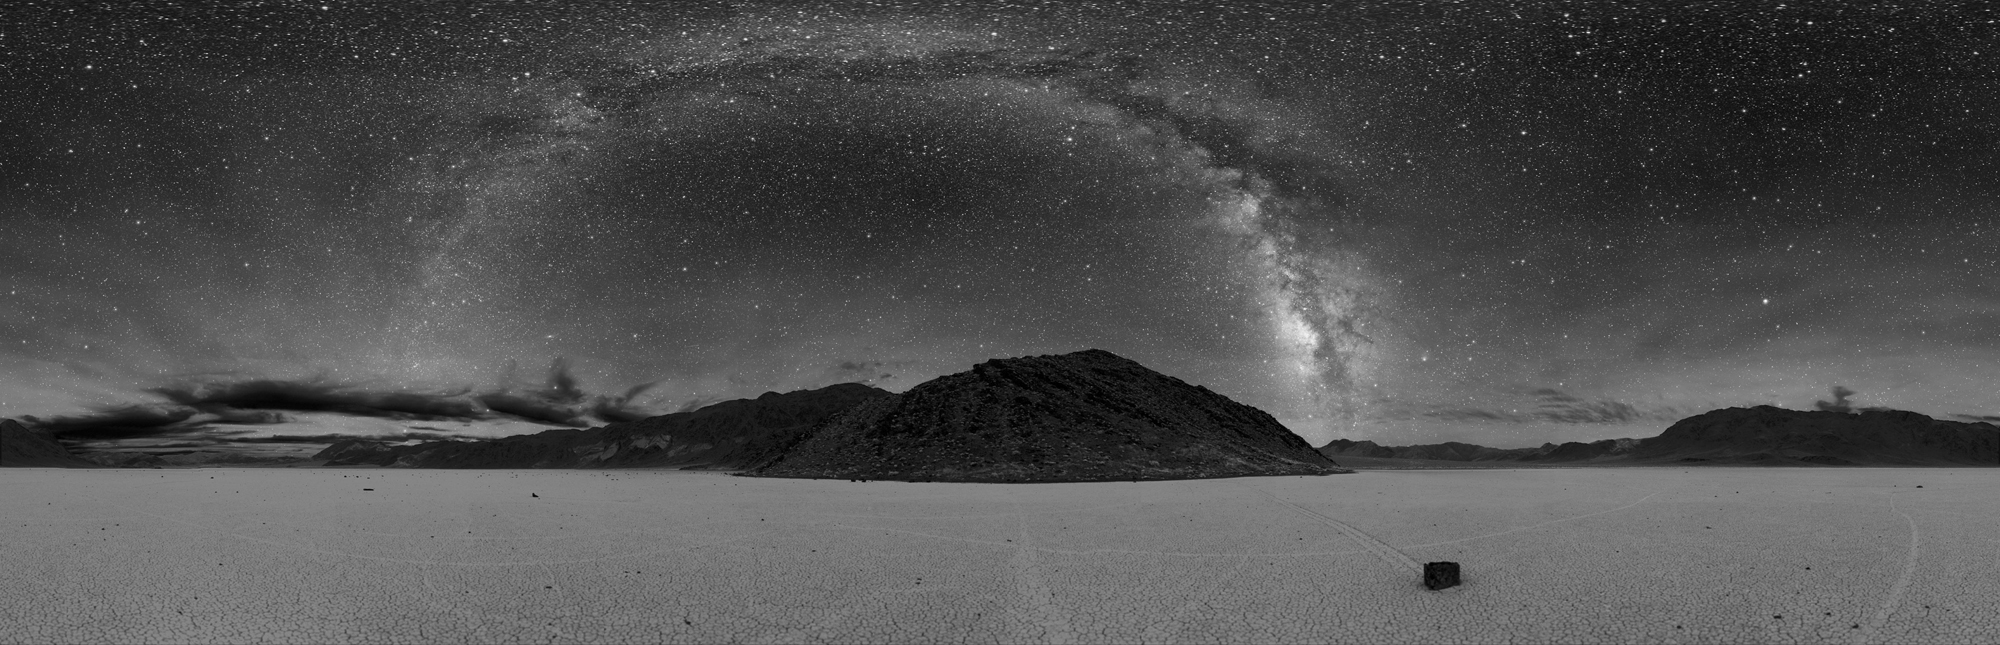 """Death Valley Sky, Racetrack Playa, California"" © 2005 Dan Duriscoe"